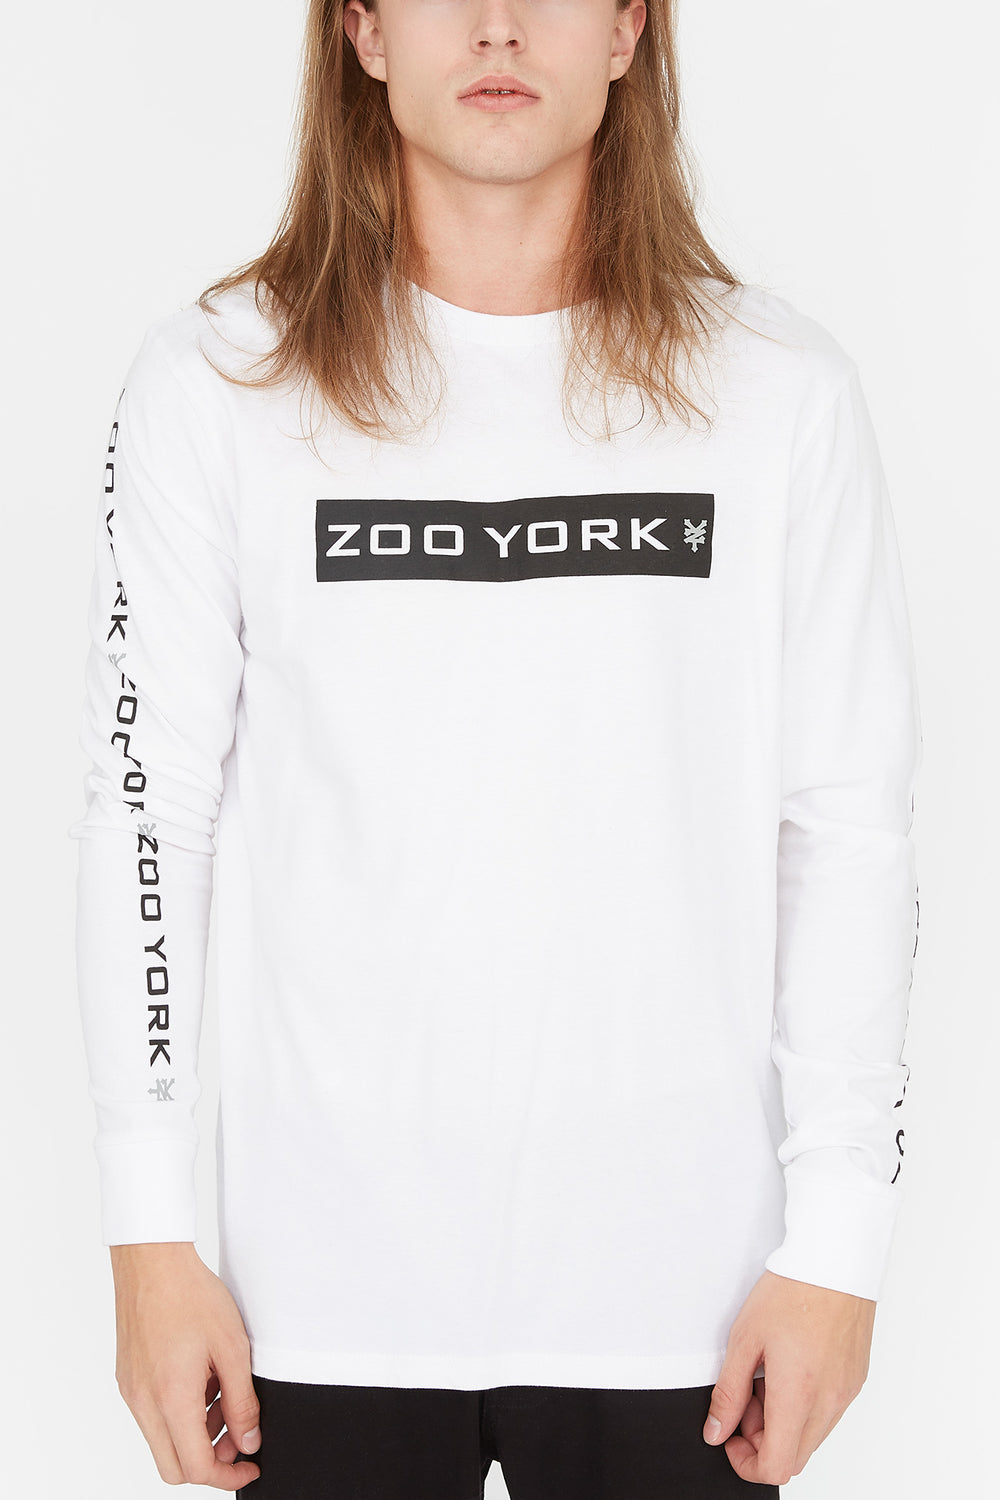 Zoo York Mens Box Logo Long Sleeve White